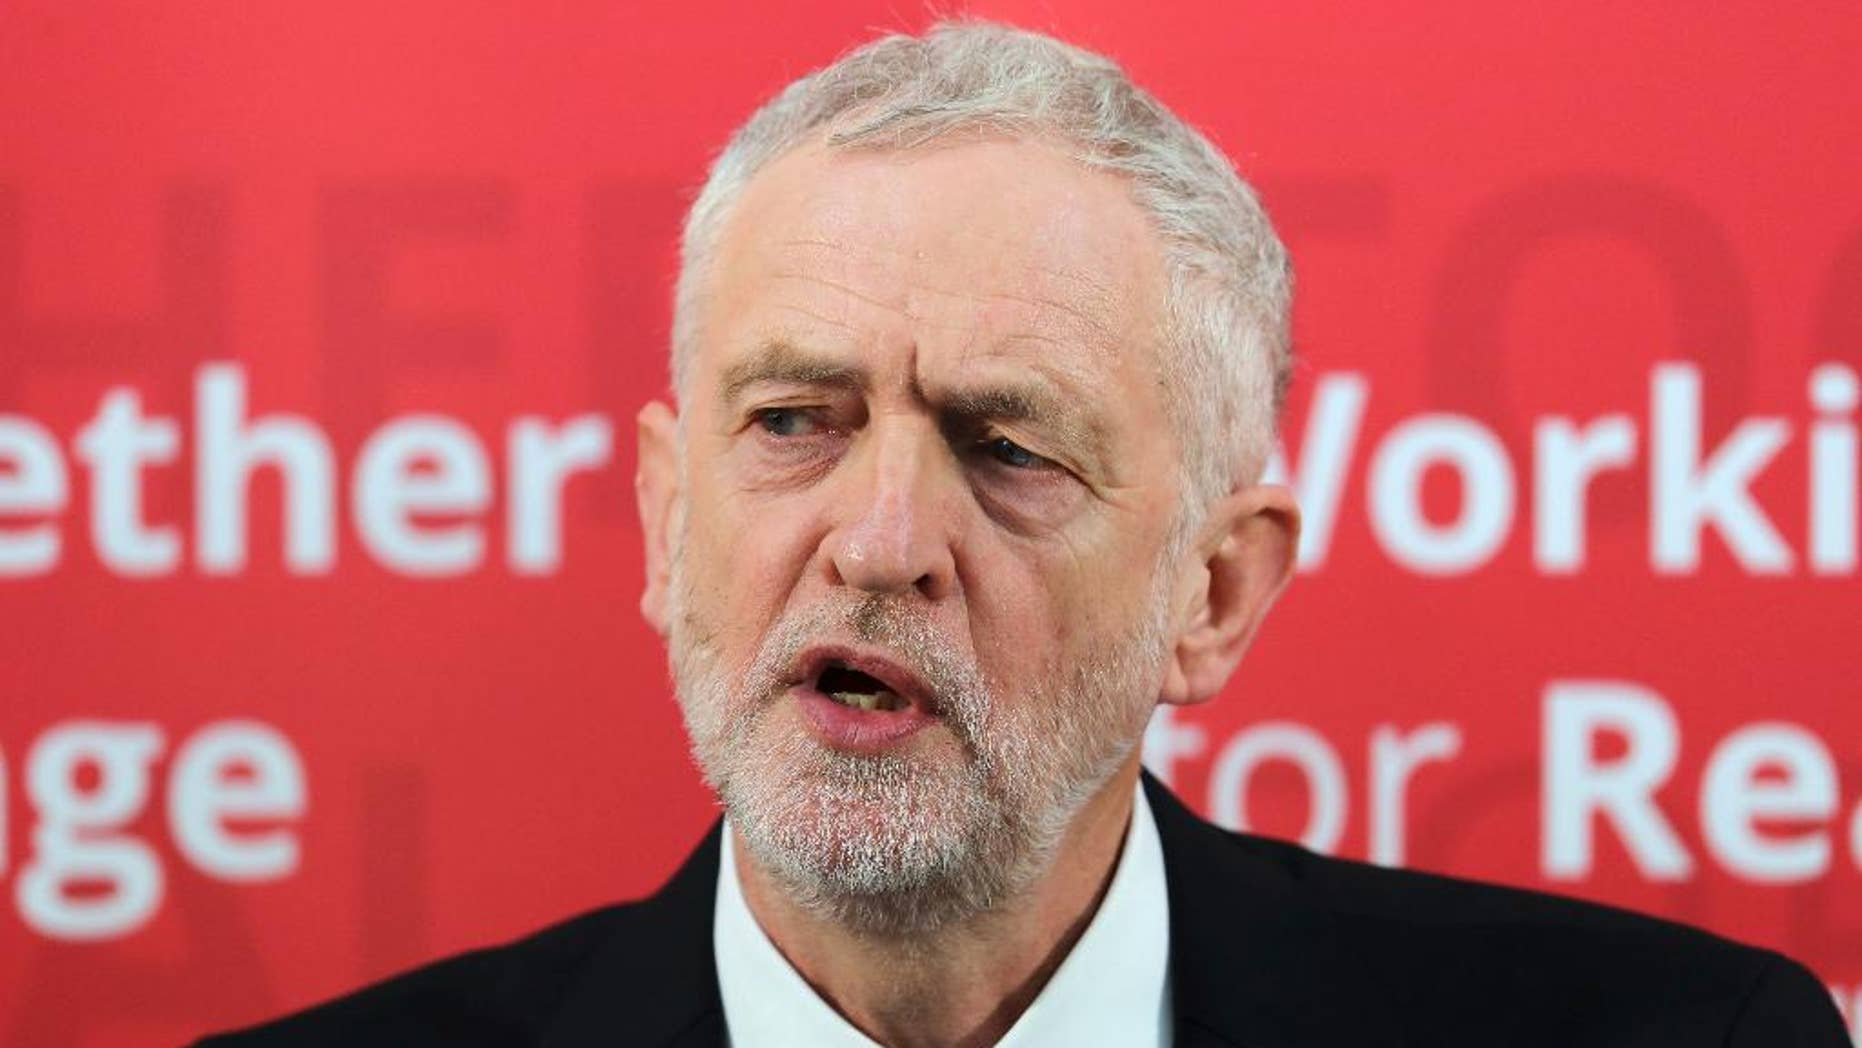 """Labour Party leader Jeremy Corbyn speaks during a visit to Paston Farm Centre in Peterborough,  England where he outlined the party's plan for Brexit and vision for Britain. Tuesday Jan. 10, 2017.  Corbyn  Britain's main opposition leader, seeking to start the year with new political momentum, has suggested imposing a national maximum wage.  Corbyn told the BBC Tuesday that """"I would like to see some kind of high-earnings cap"""" to reduce inequality. (Chris Radburn/PA via AP)"""